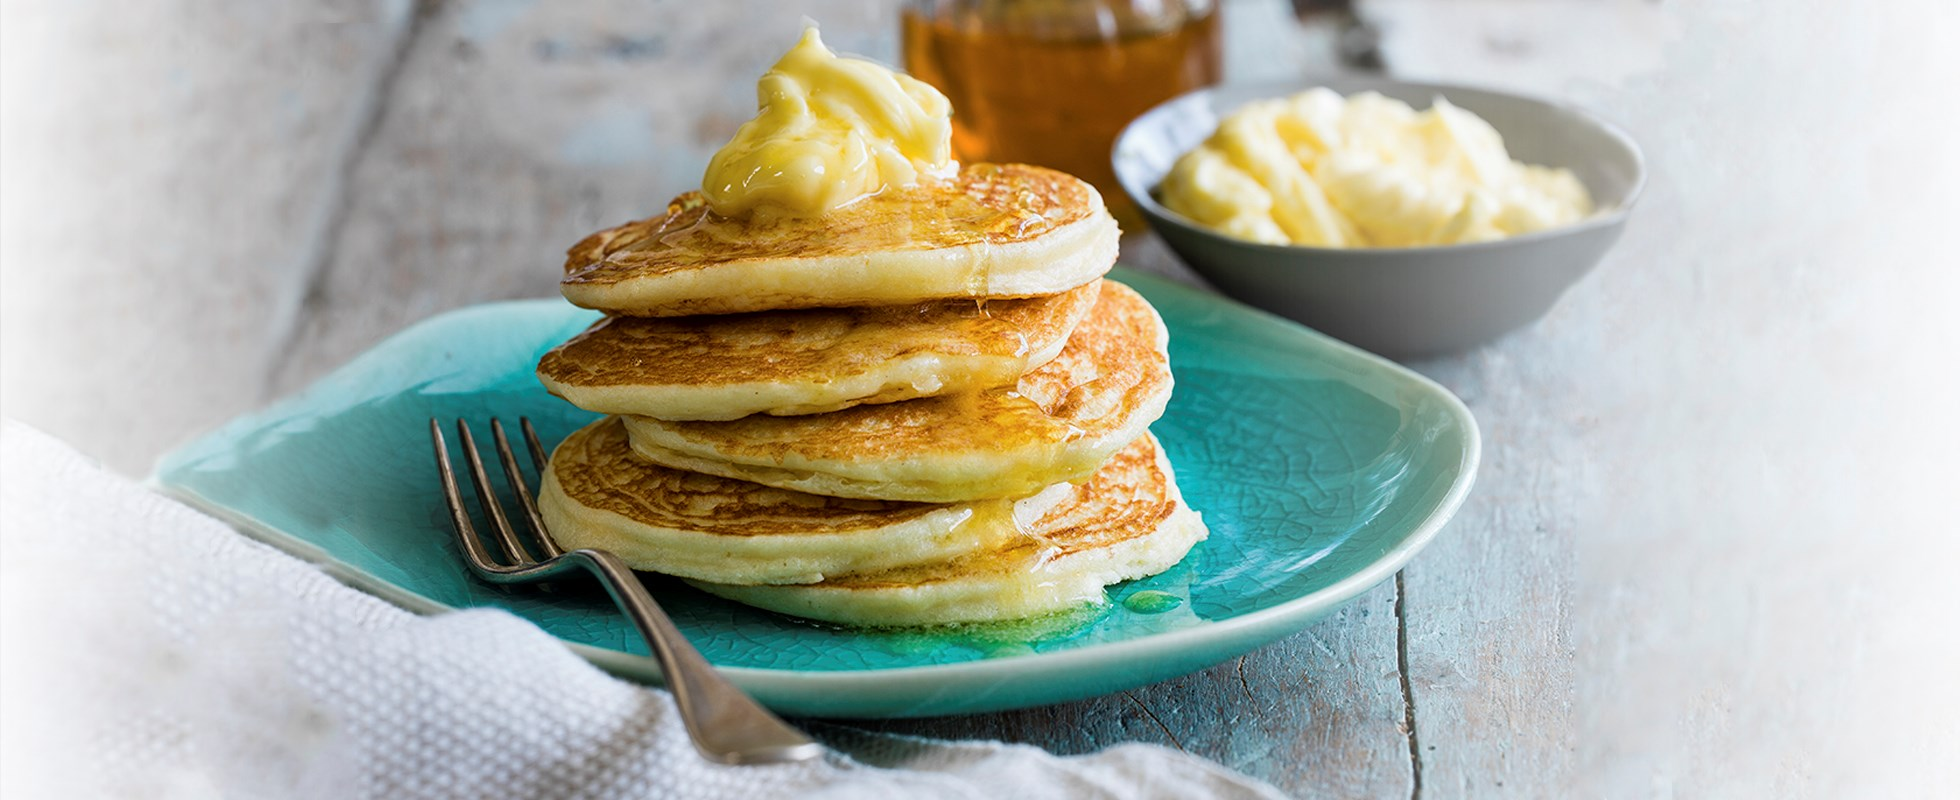 Fluffy ricotta pancakes with whipped honey butter